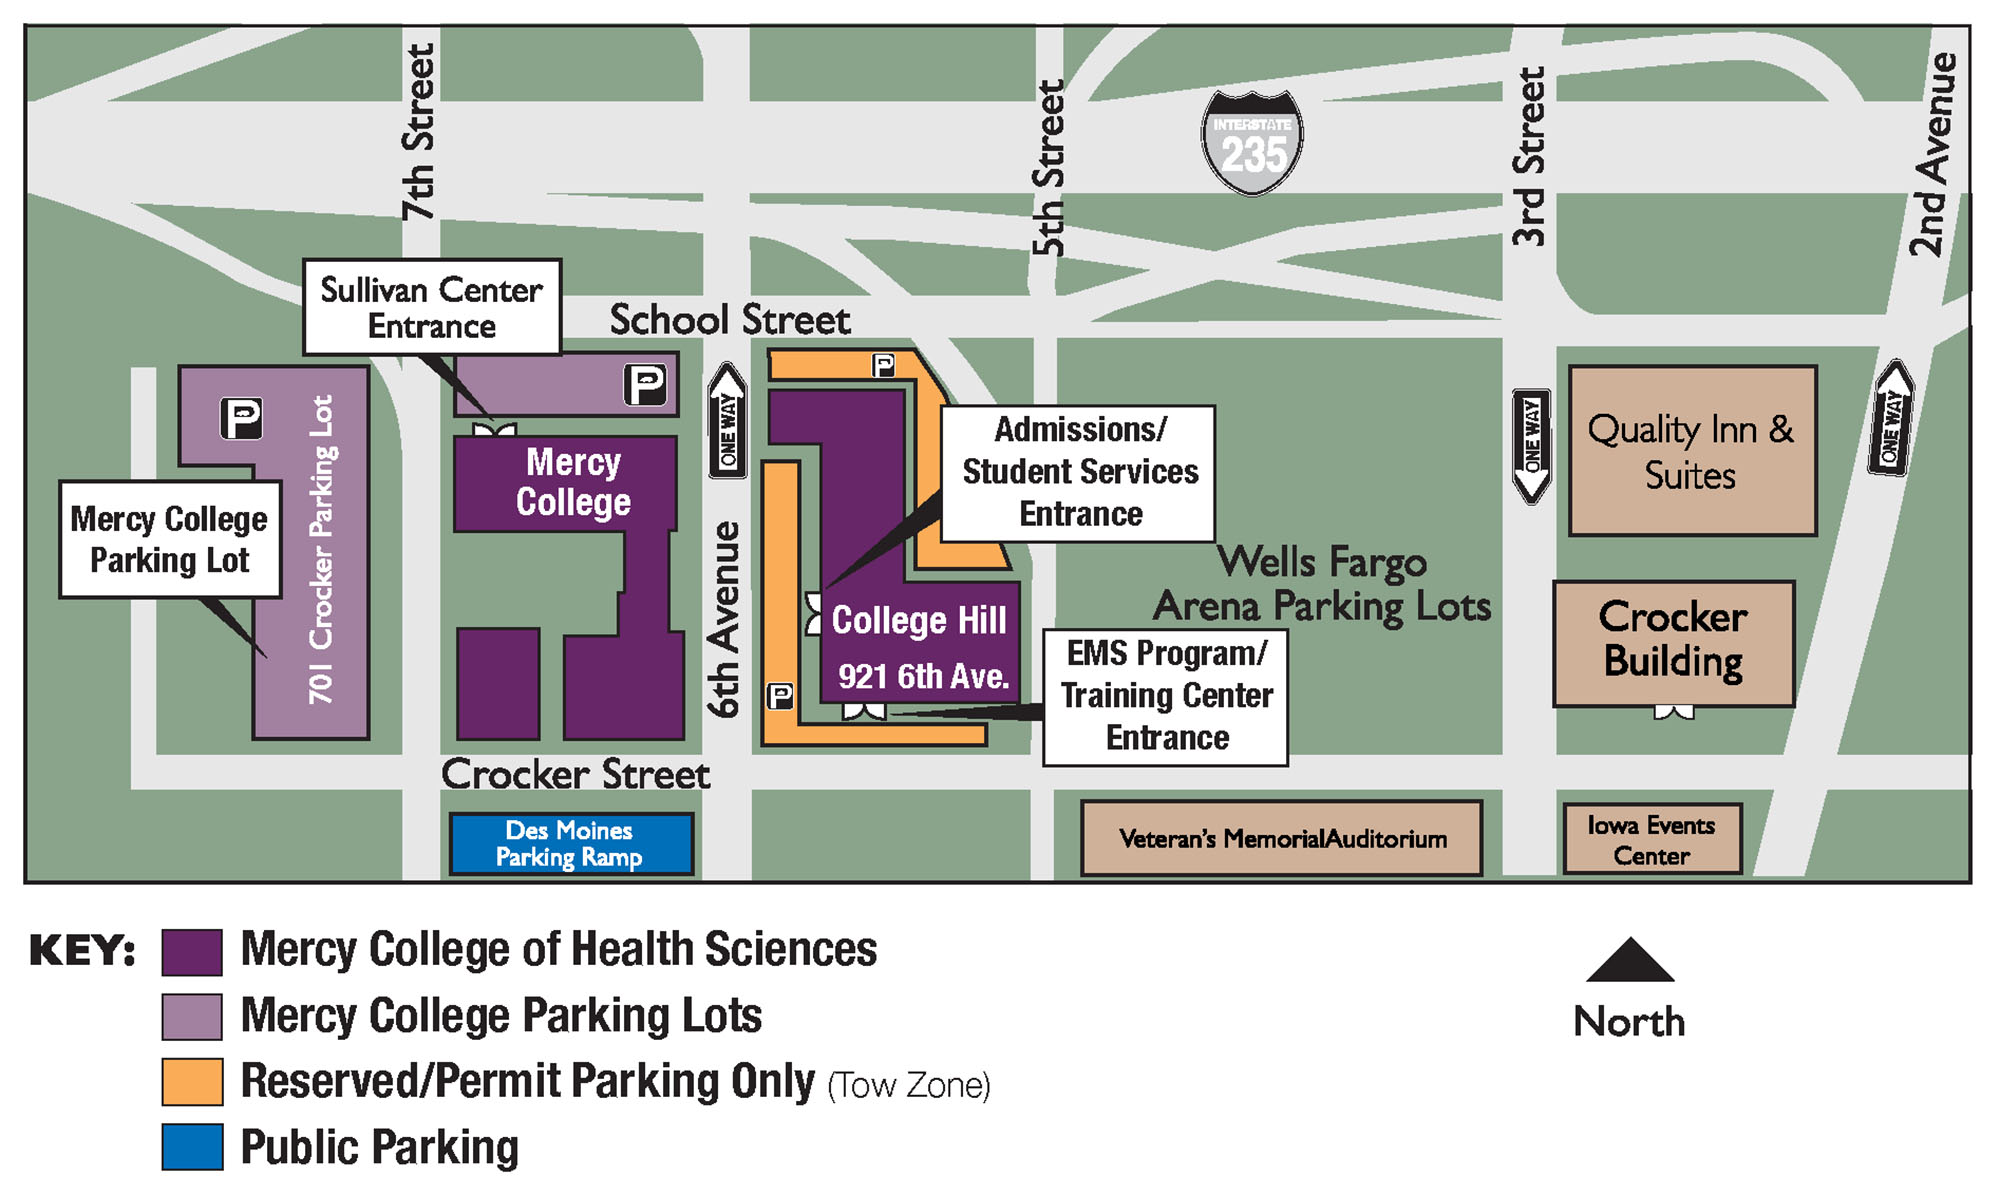 Gwynedd Mercy Campus Map.Mercy College Of Health Sciences Academics Academic Programs